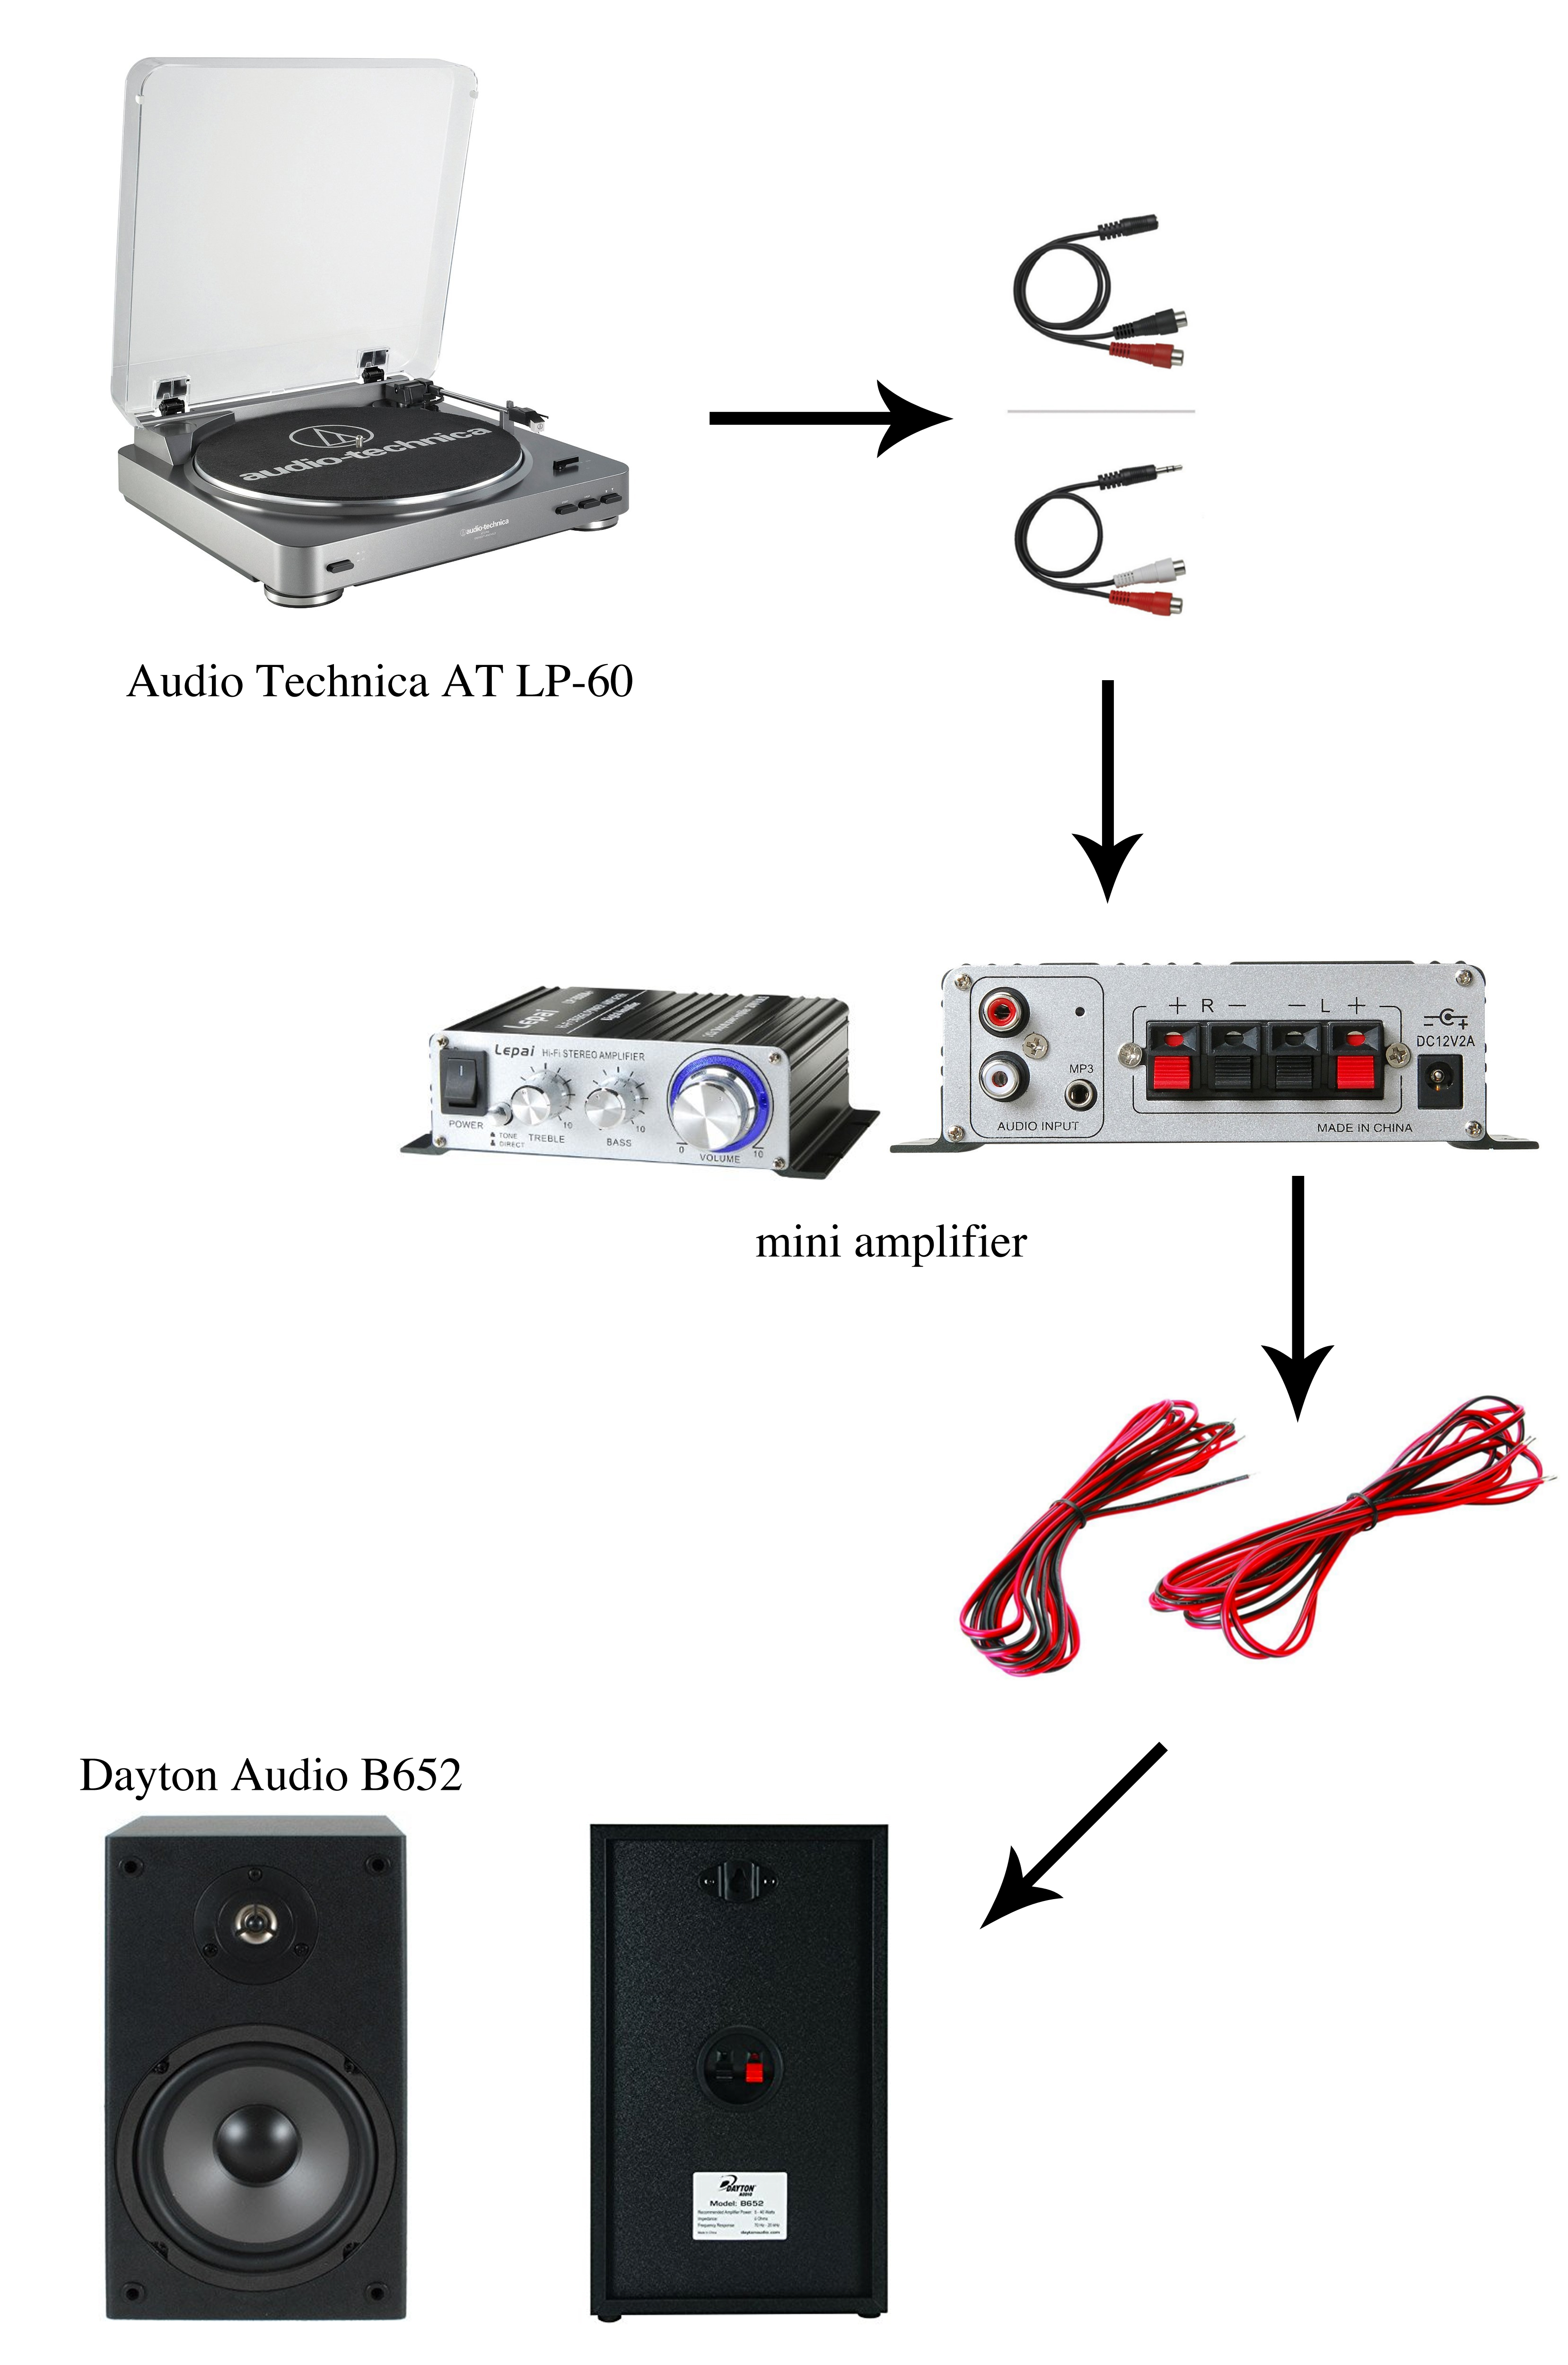 Help With My Turntable Speakers Amp Setup Asap Plz Thank You Wiring Diagrams Audio Technica Myttsetup